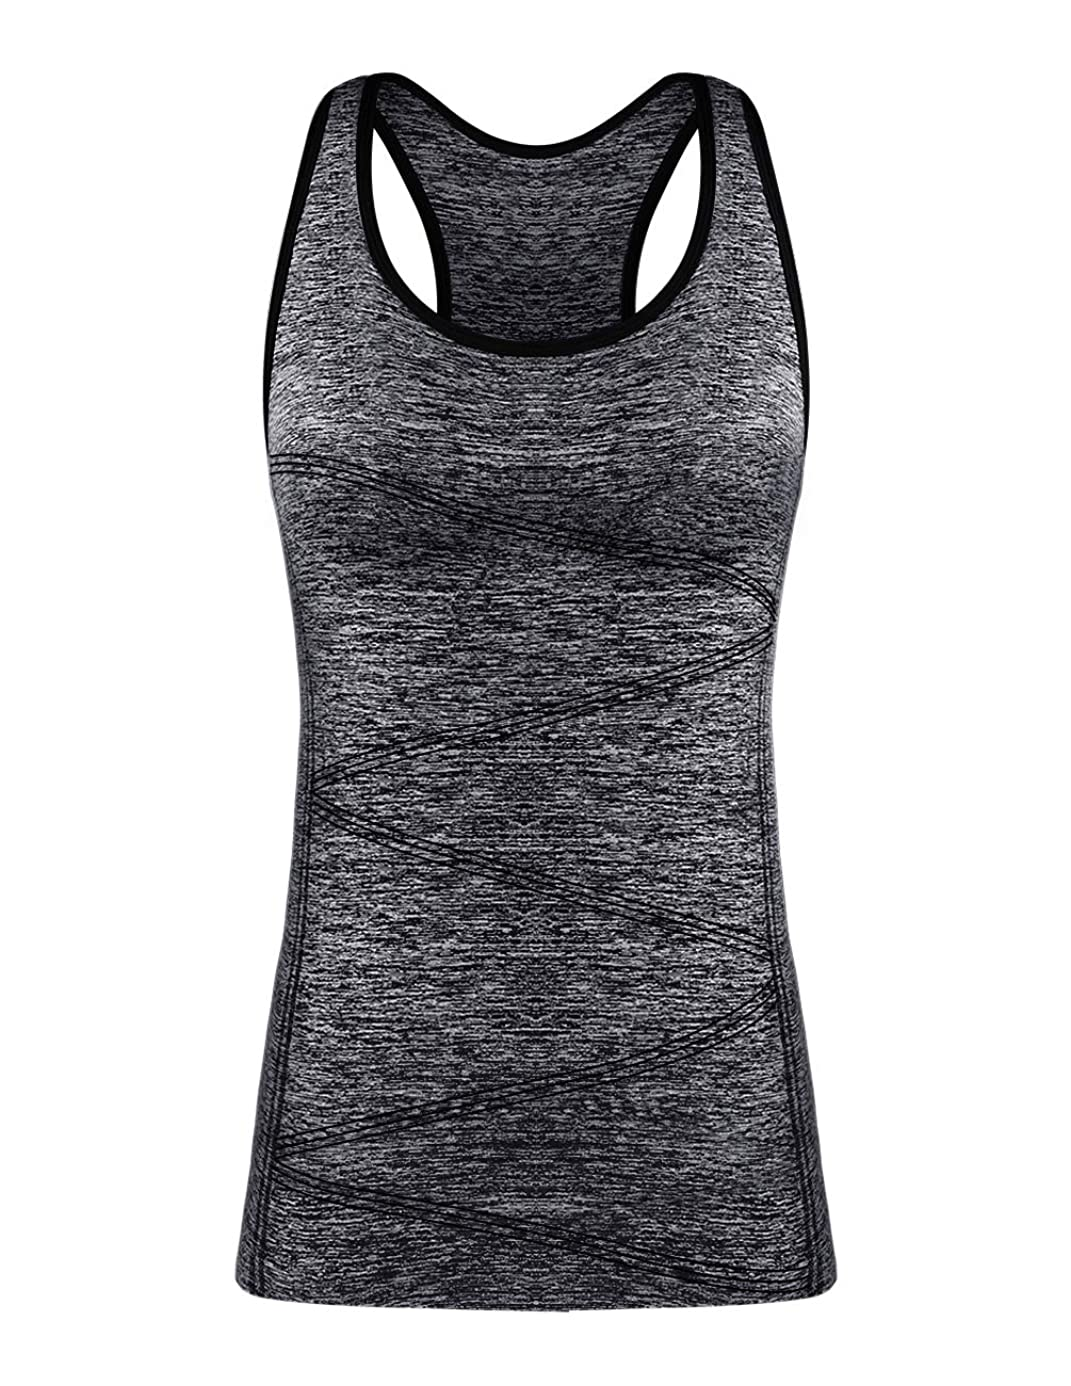 Yoga Tank Tops for Women, Stretchy Sleeveless Shirt Workout Running Tops with Removable Bra Pads